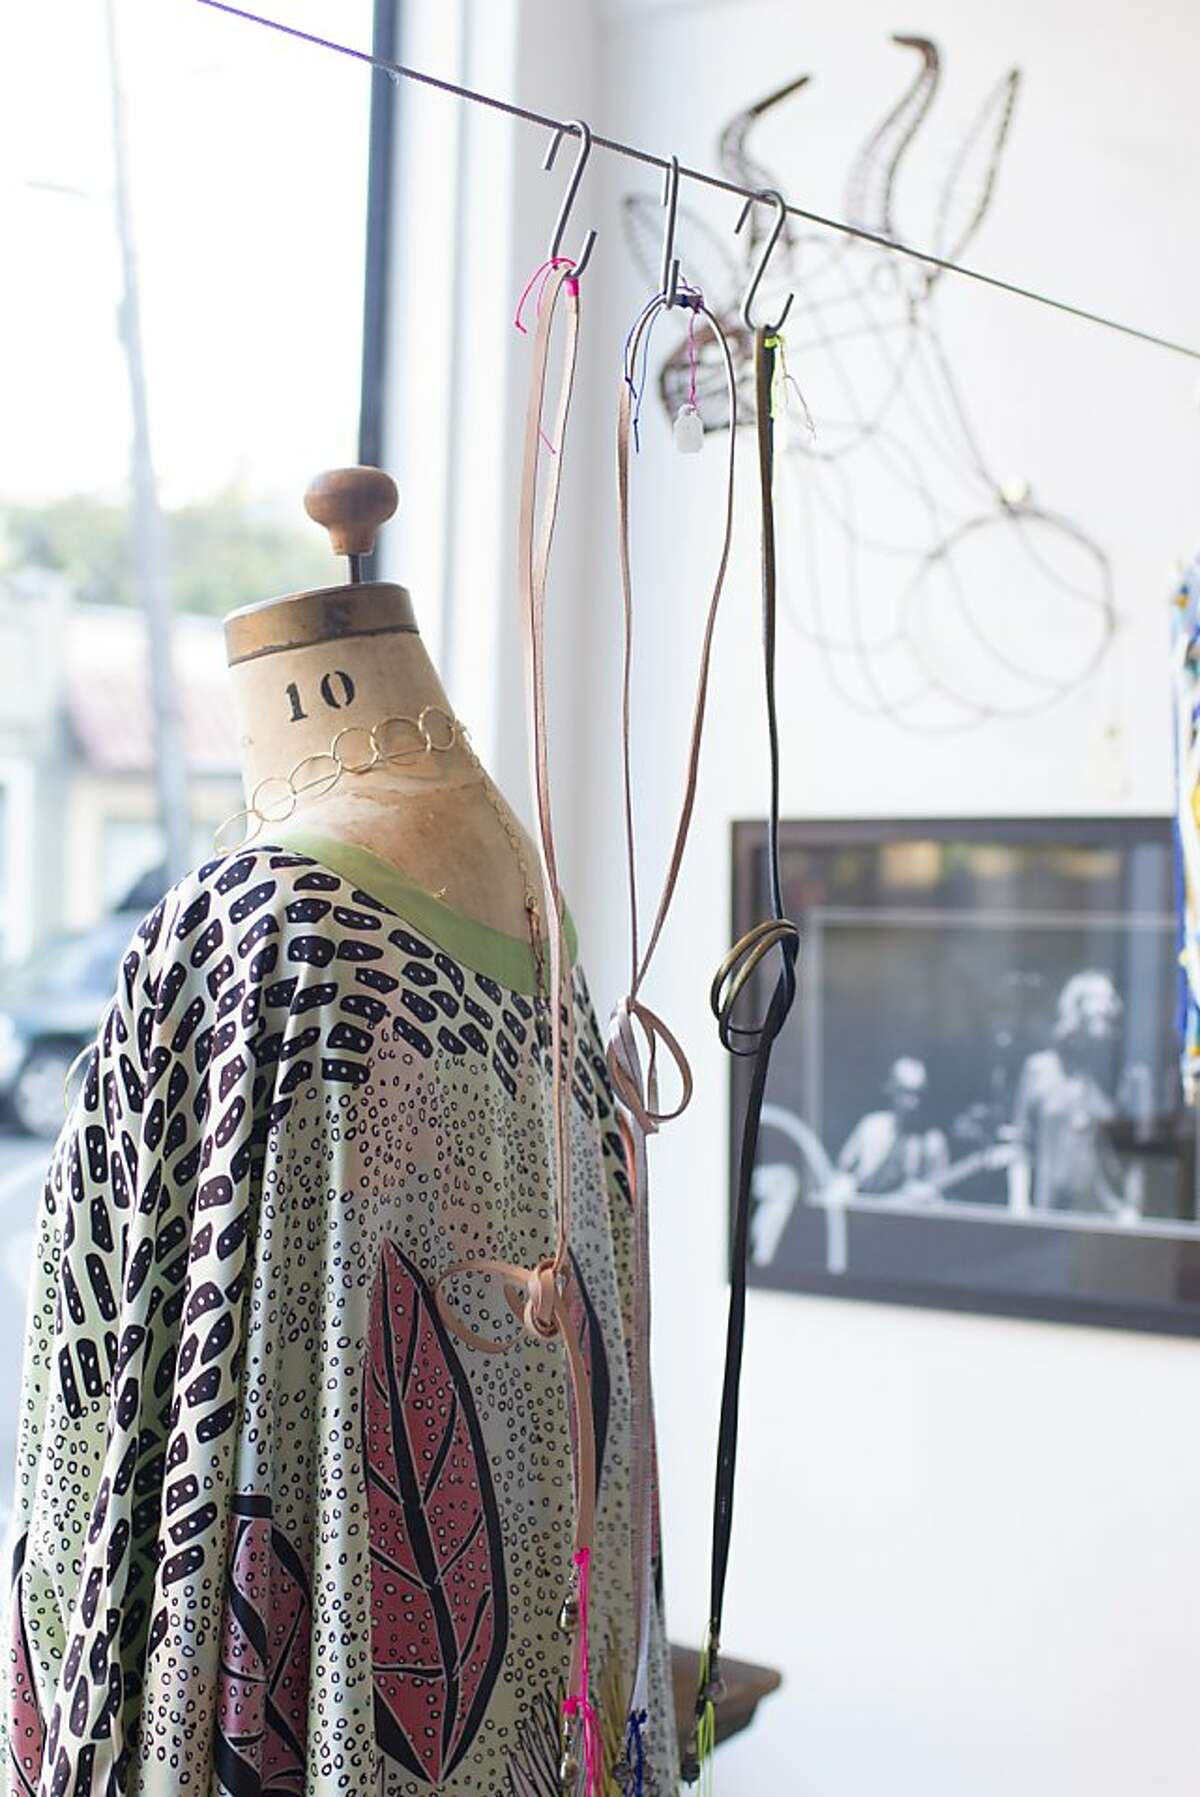 Seven on Locust, just opened in Mill Valley, features an eclectic mix of style, products and price points.